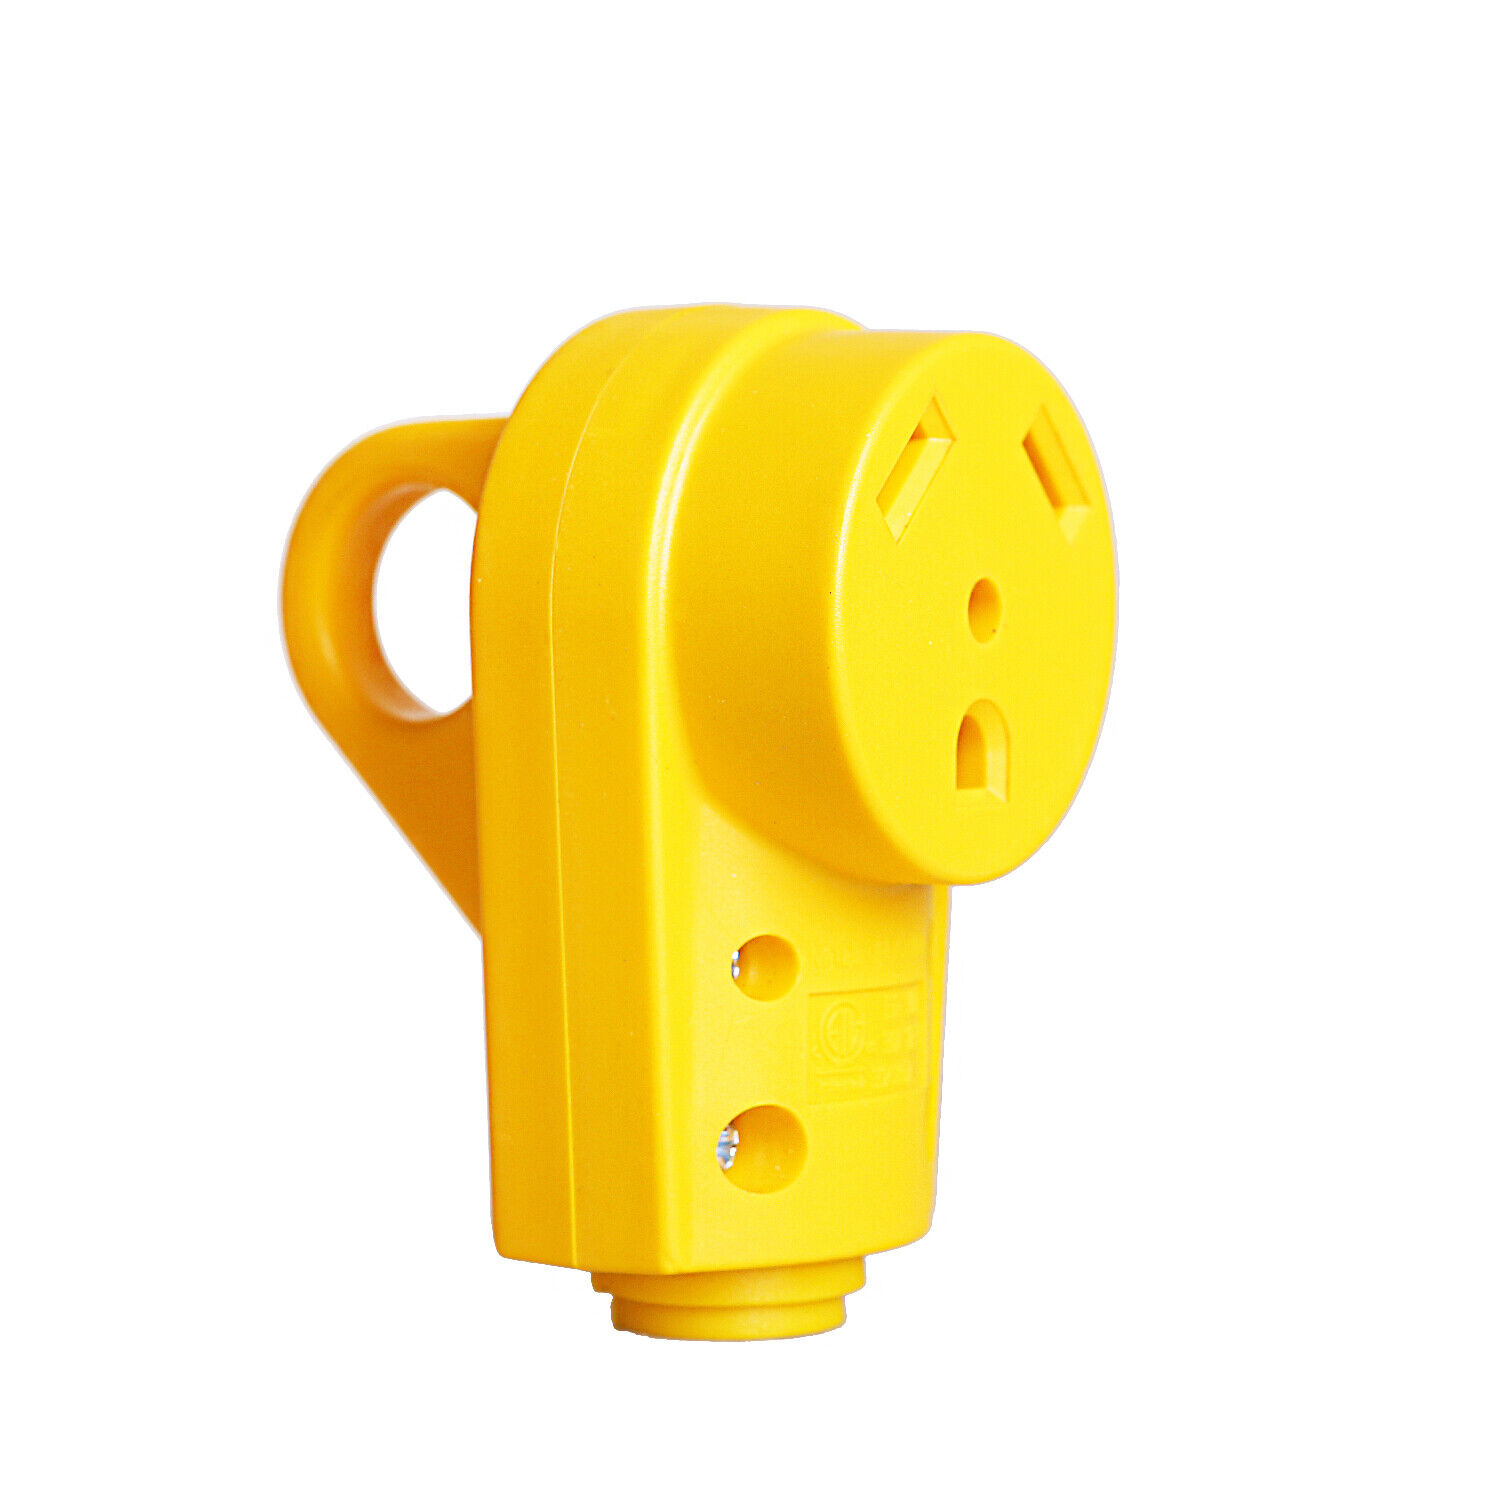 RV 30AMP Replacement Female Plug Safer Plug with an Easier Grip eBay Motors